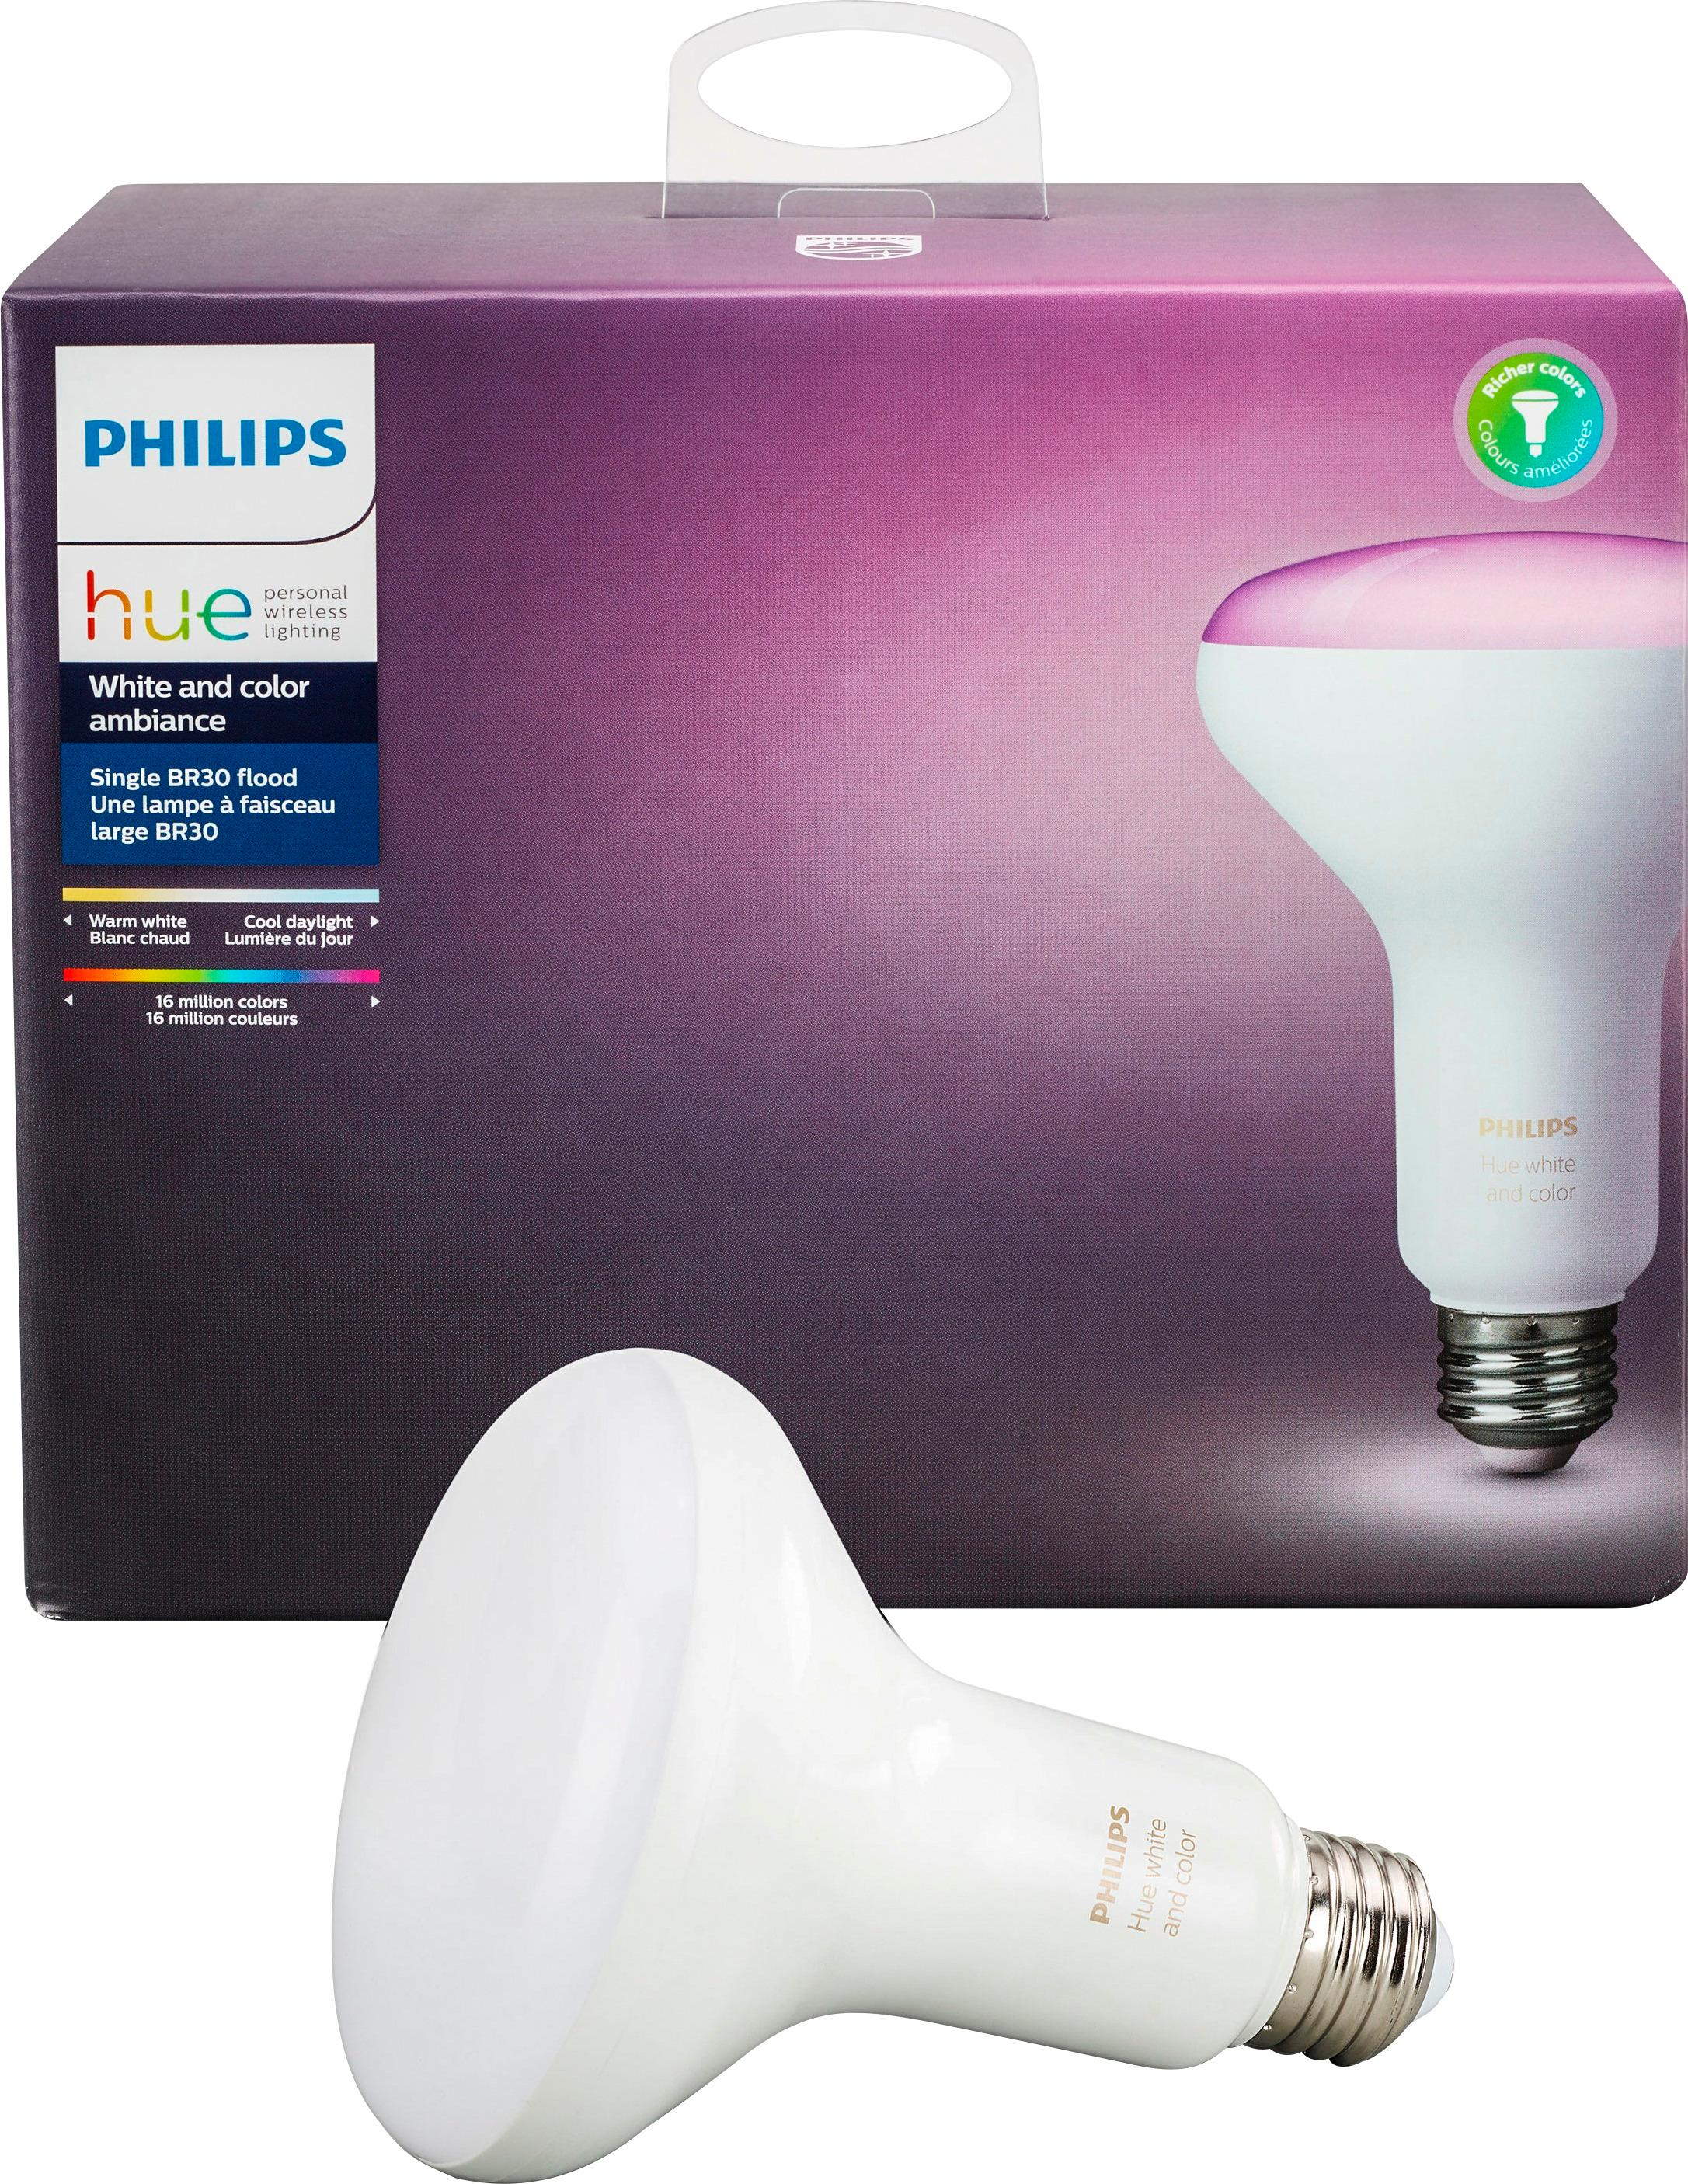 Philips Hue Br30 Philips Hue White And Color Ambiance Br30 Wi Fi Smart Led Floodlight Bulb Multicolor